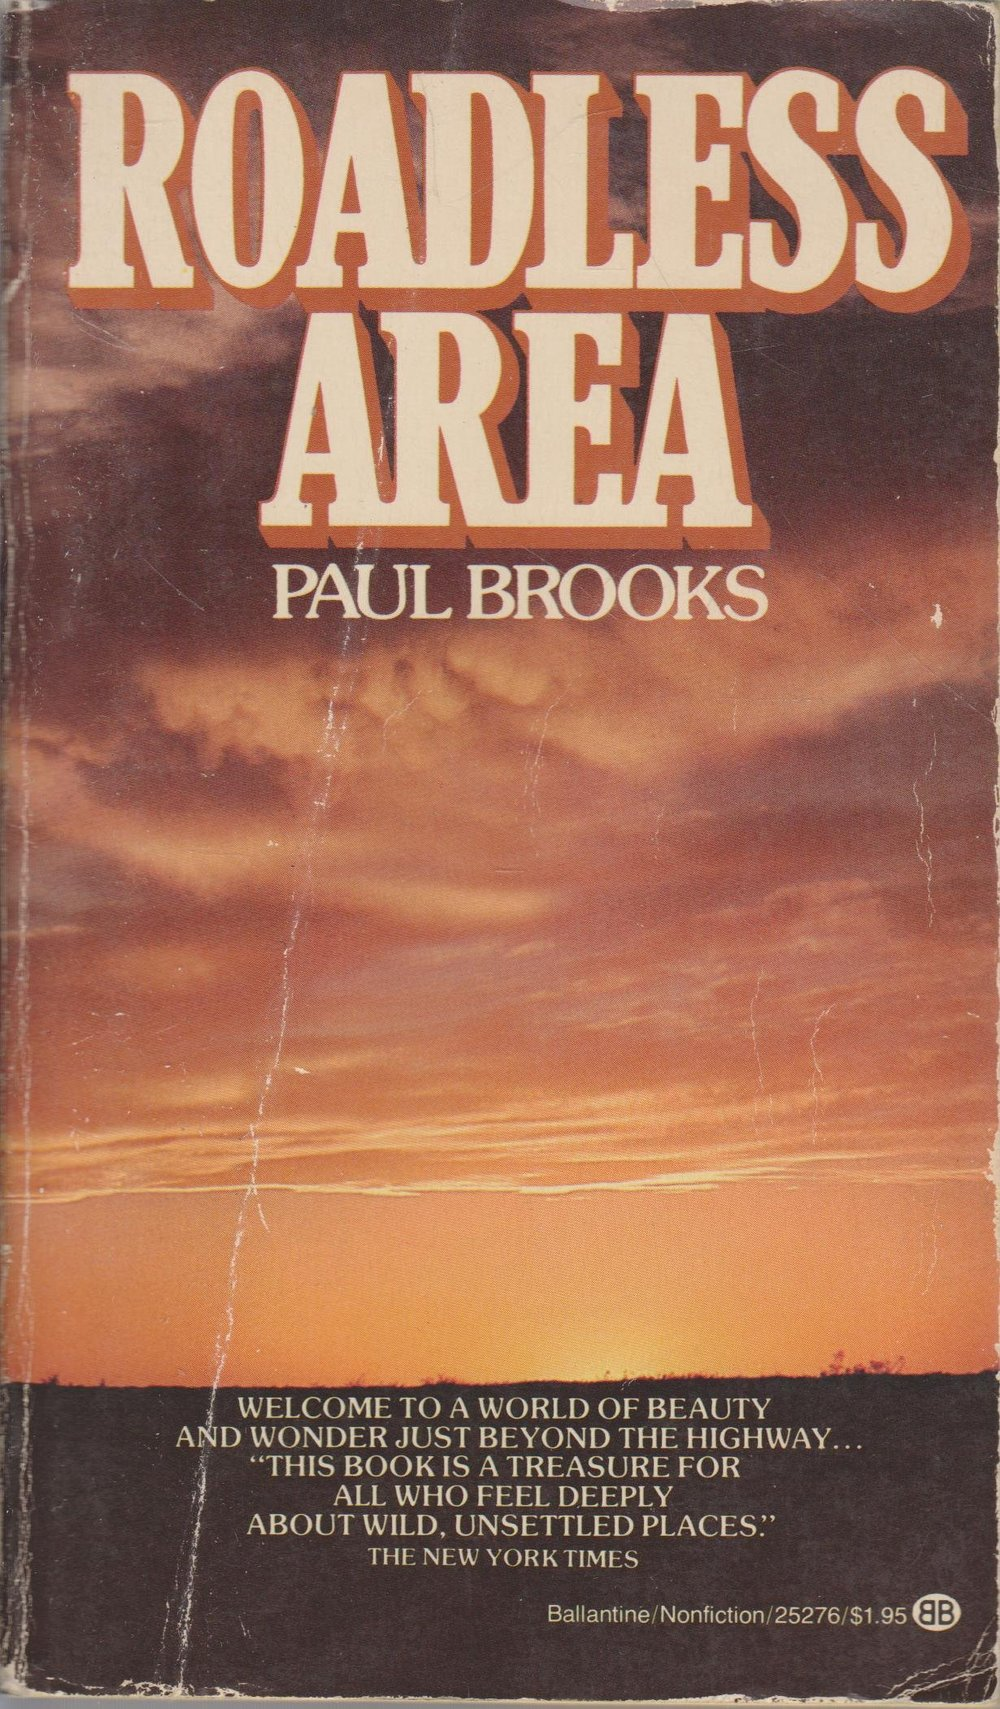 Roadless Area by Paul Brooks